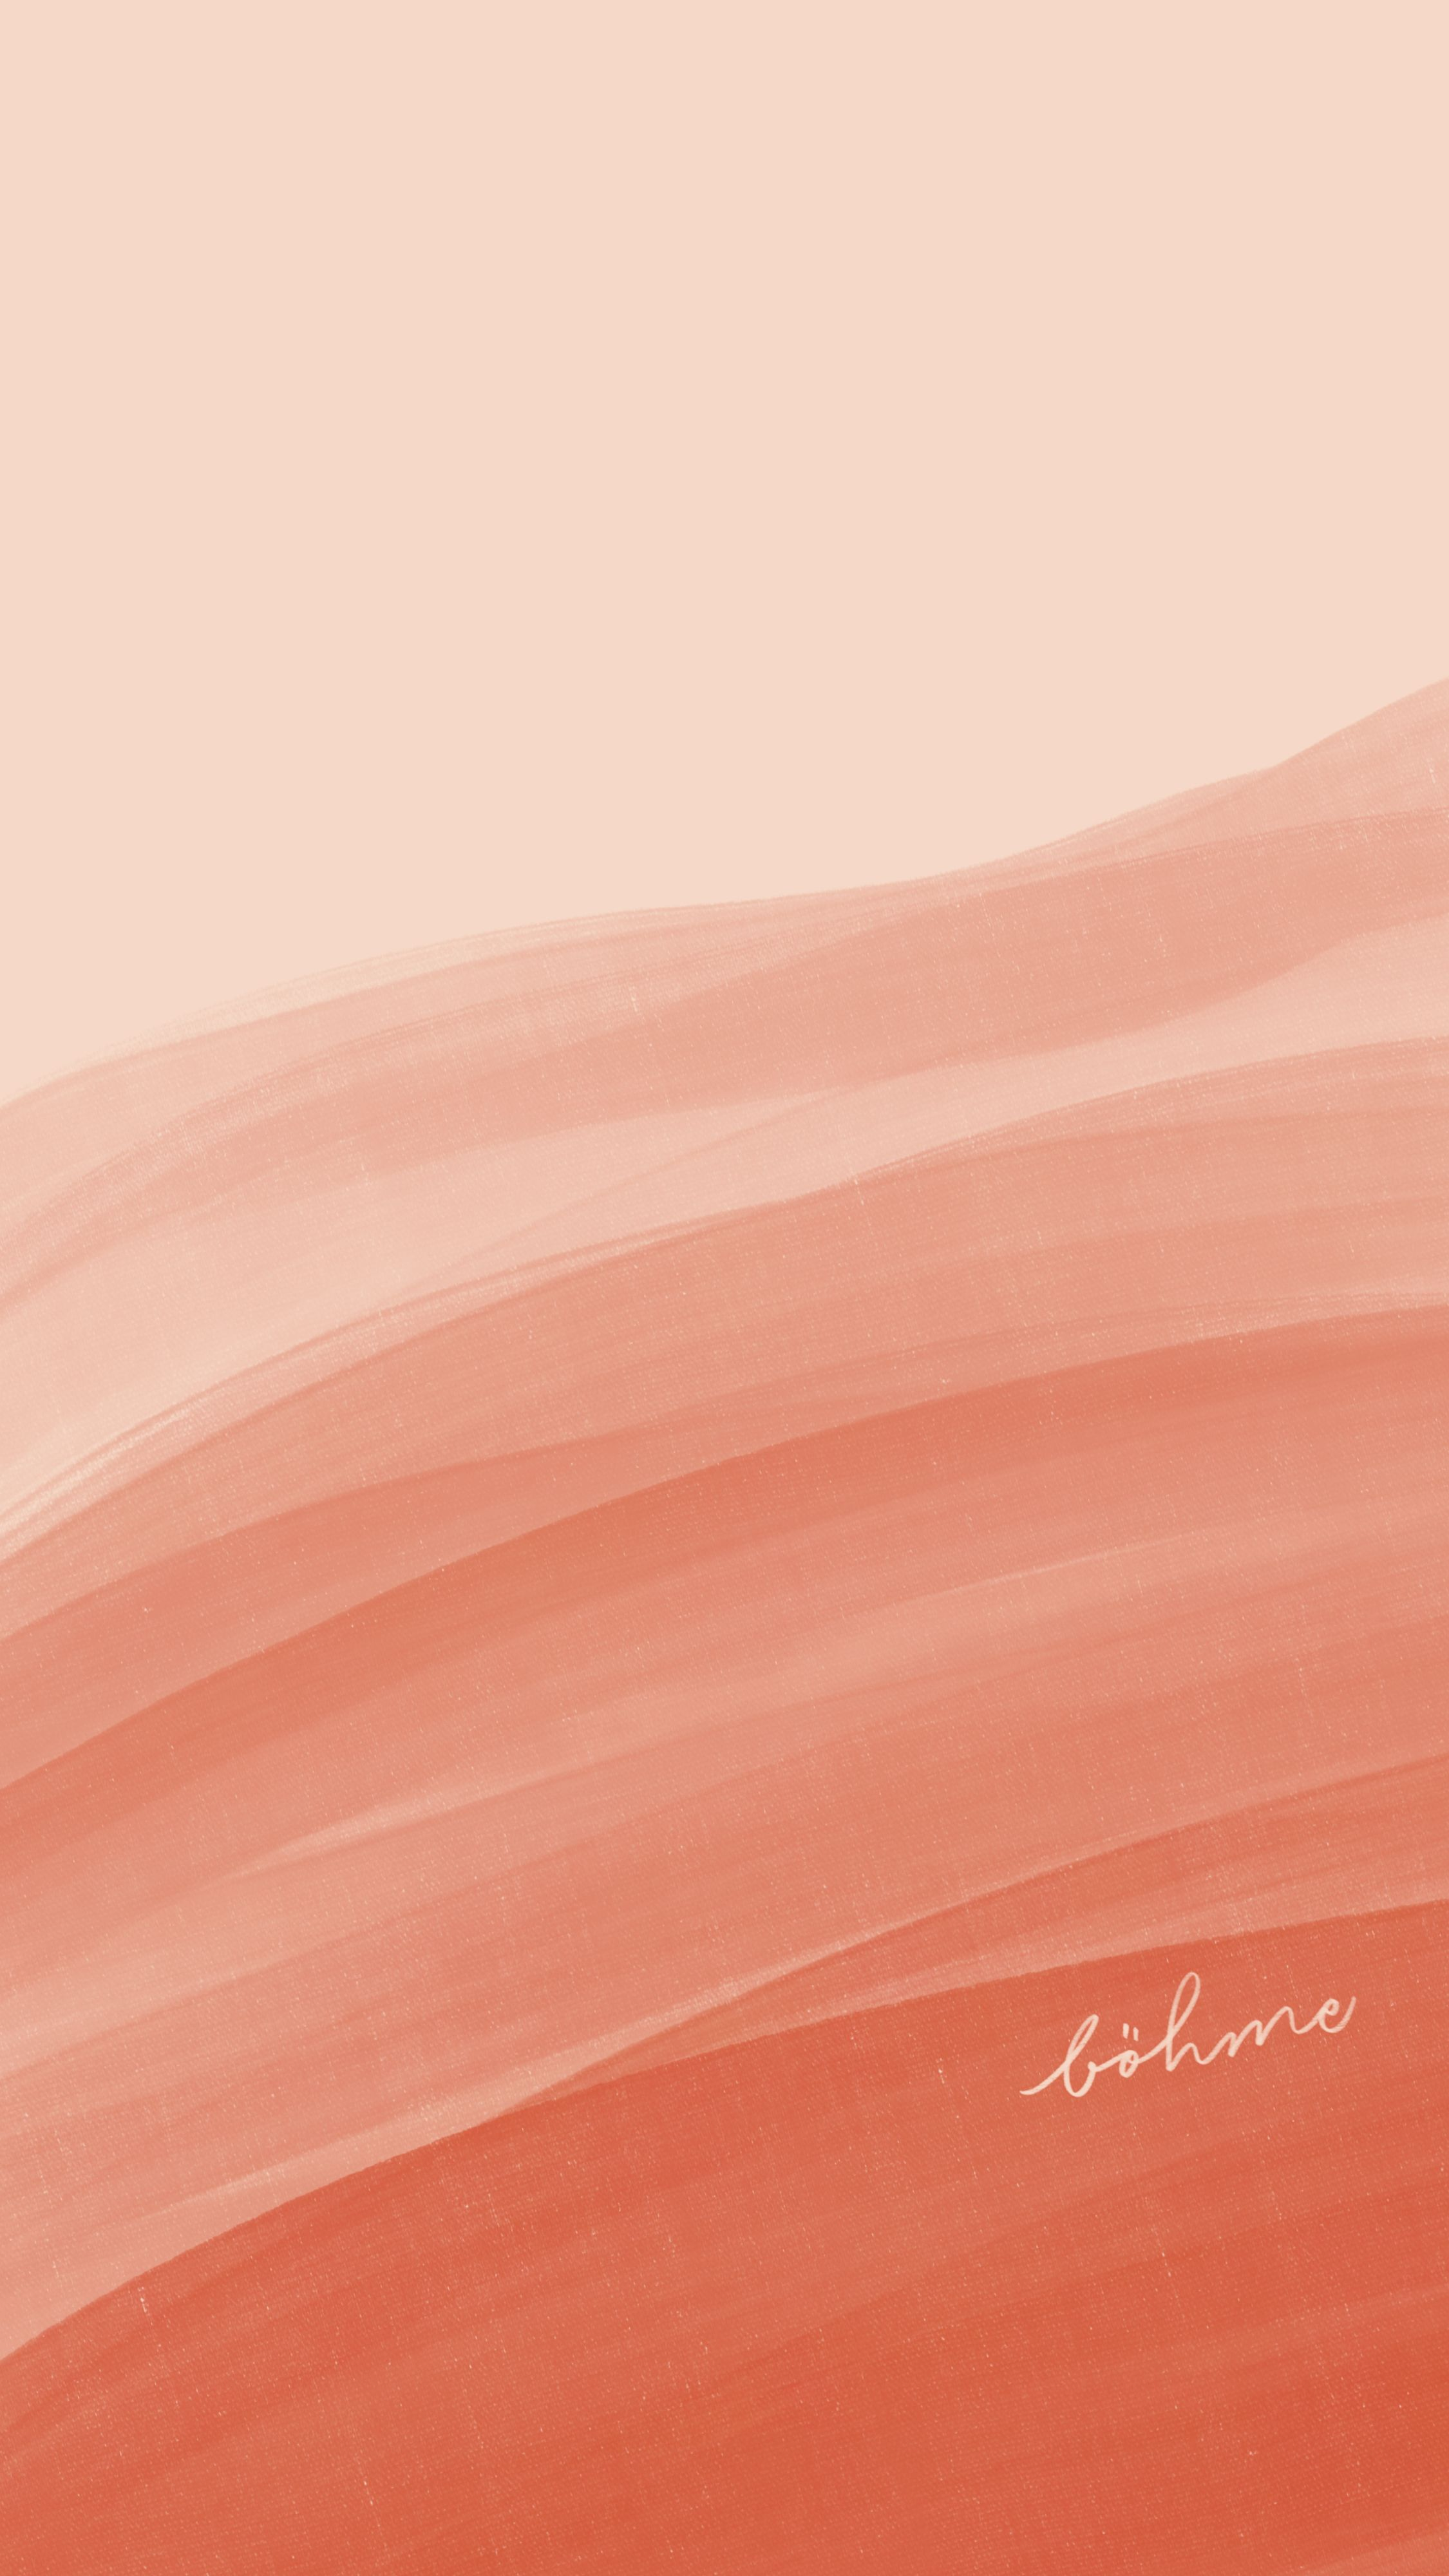 Romance Is In The Air And On Your Phone Simple Iphone Wallpaper Peach Wallpaper Phone Wallpaper Patterns Orange aesthetic aesthetic colors pantone powerful art just peachy peach colors aesthetic wallpapers color inspiration planting flowers. iphone wallpaper